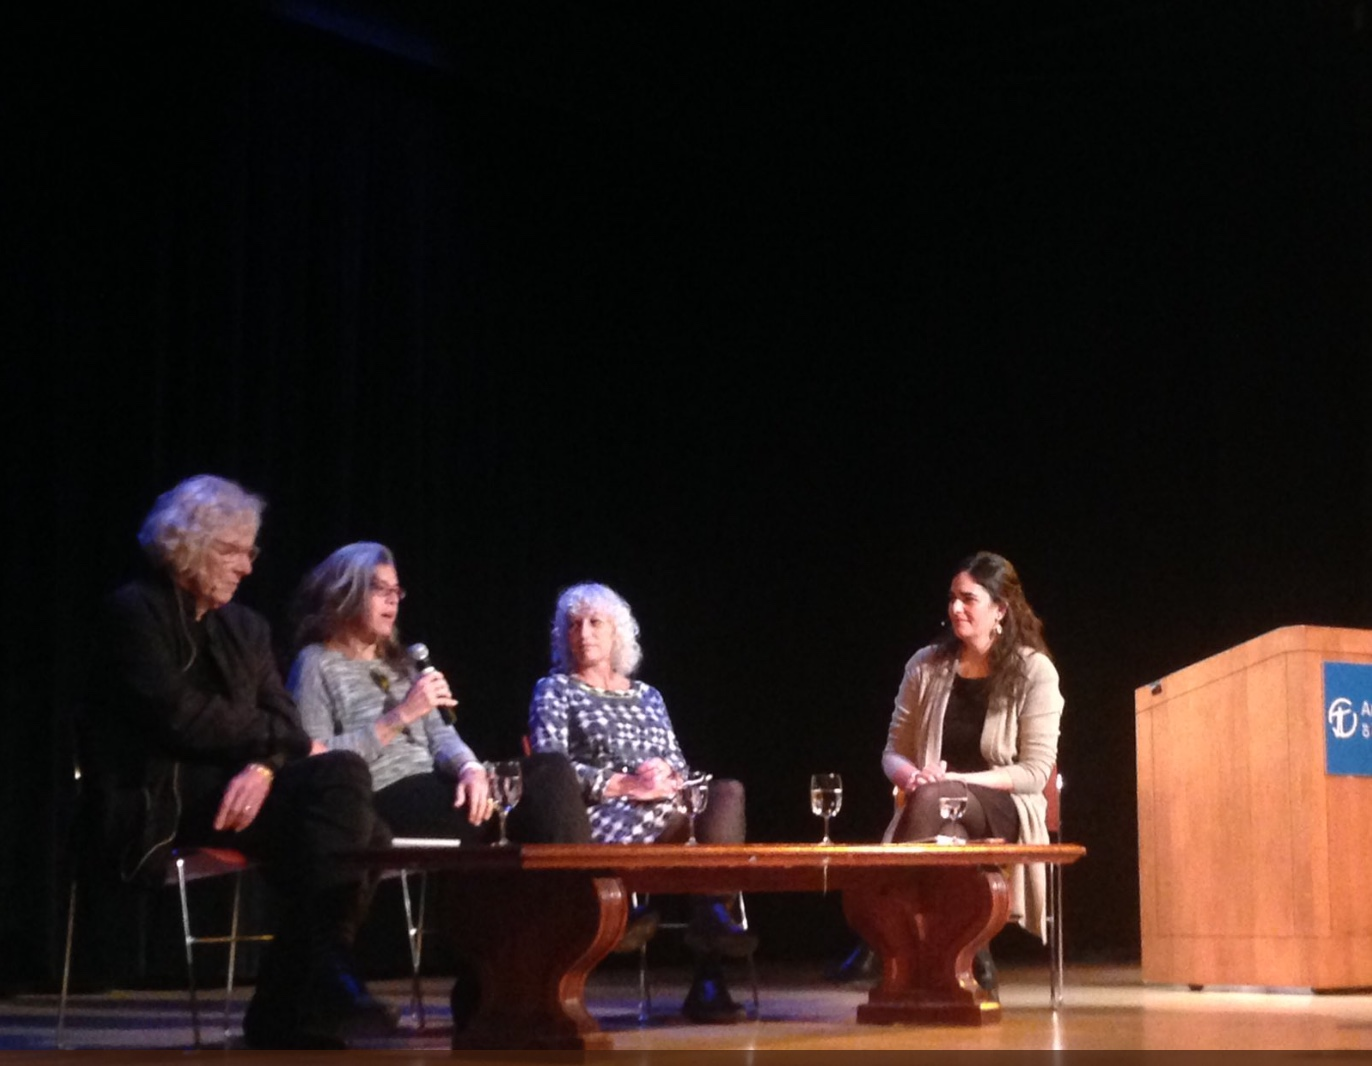 SCCS 2017 public panel at the American Museum of Natural History